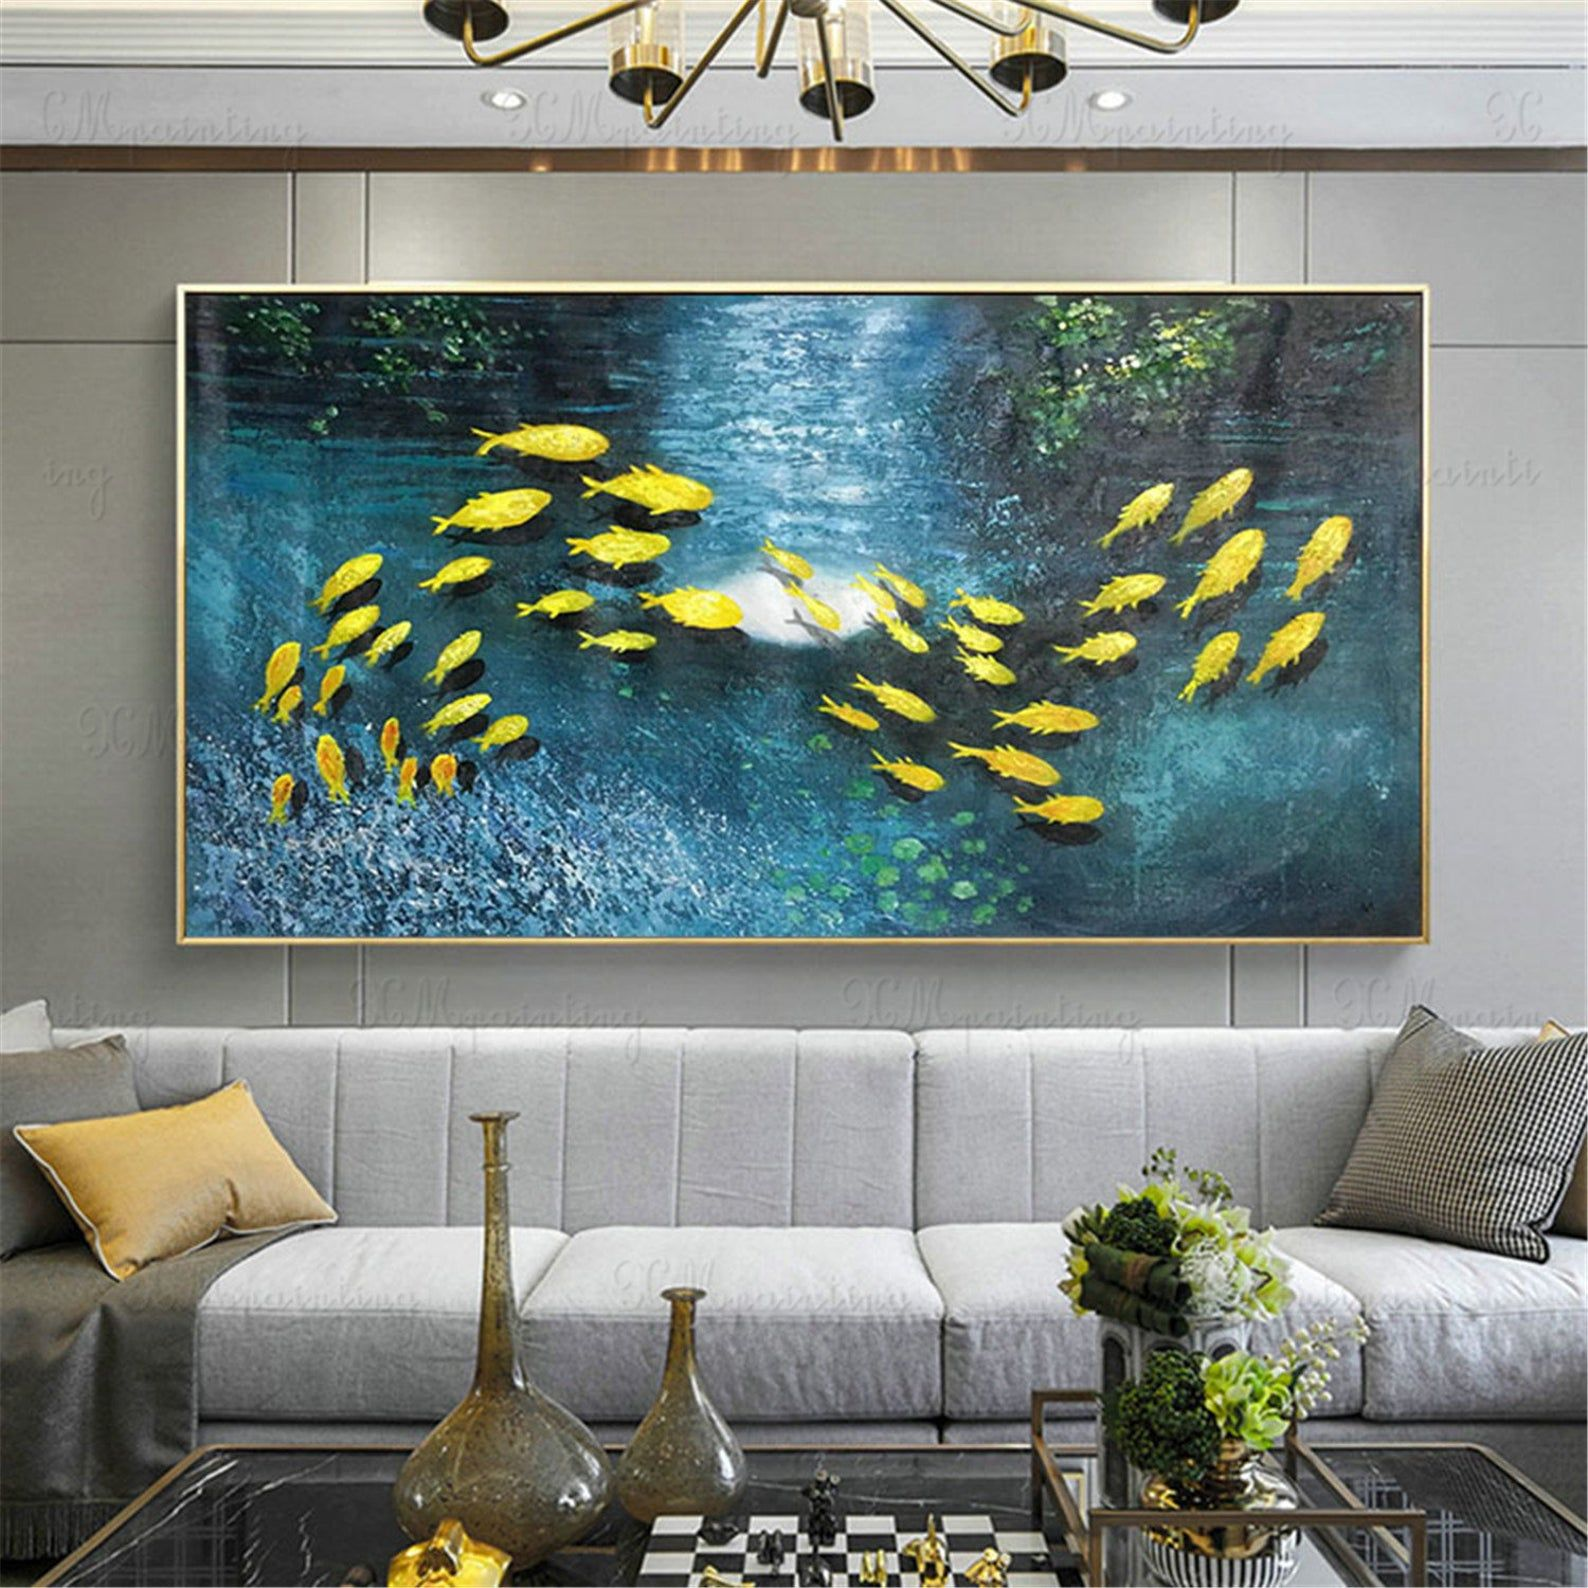 Abstract Painting On Canvas Gold Fish Original Acrylic Wall Art Pictures For Living Room Home Decor Gold Art Texture Deer Blue Quadros Decor Malerei Gemälde Für Wohnzimmer Abstrakt